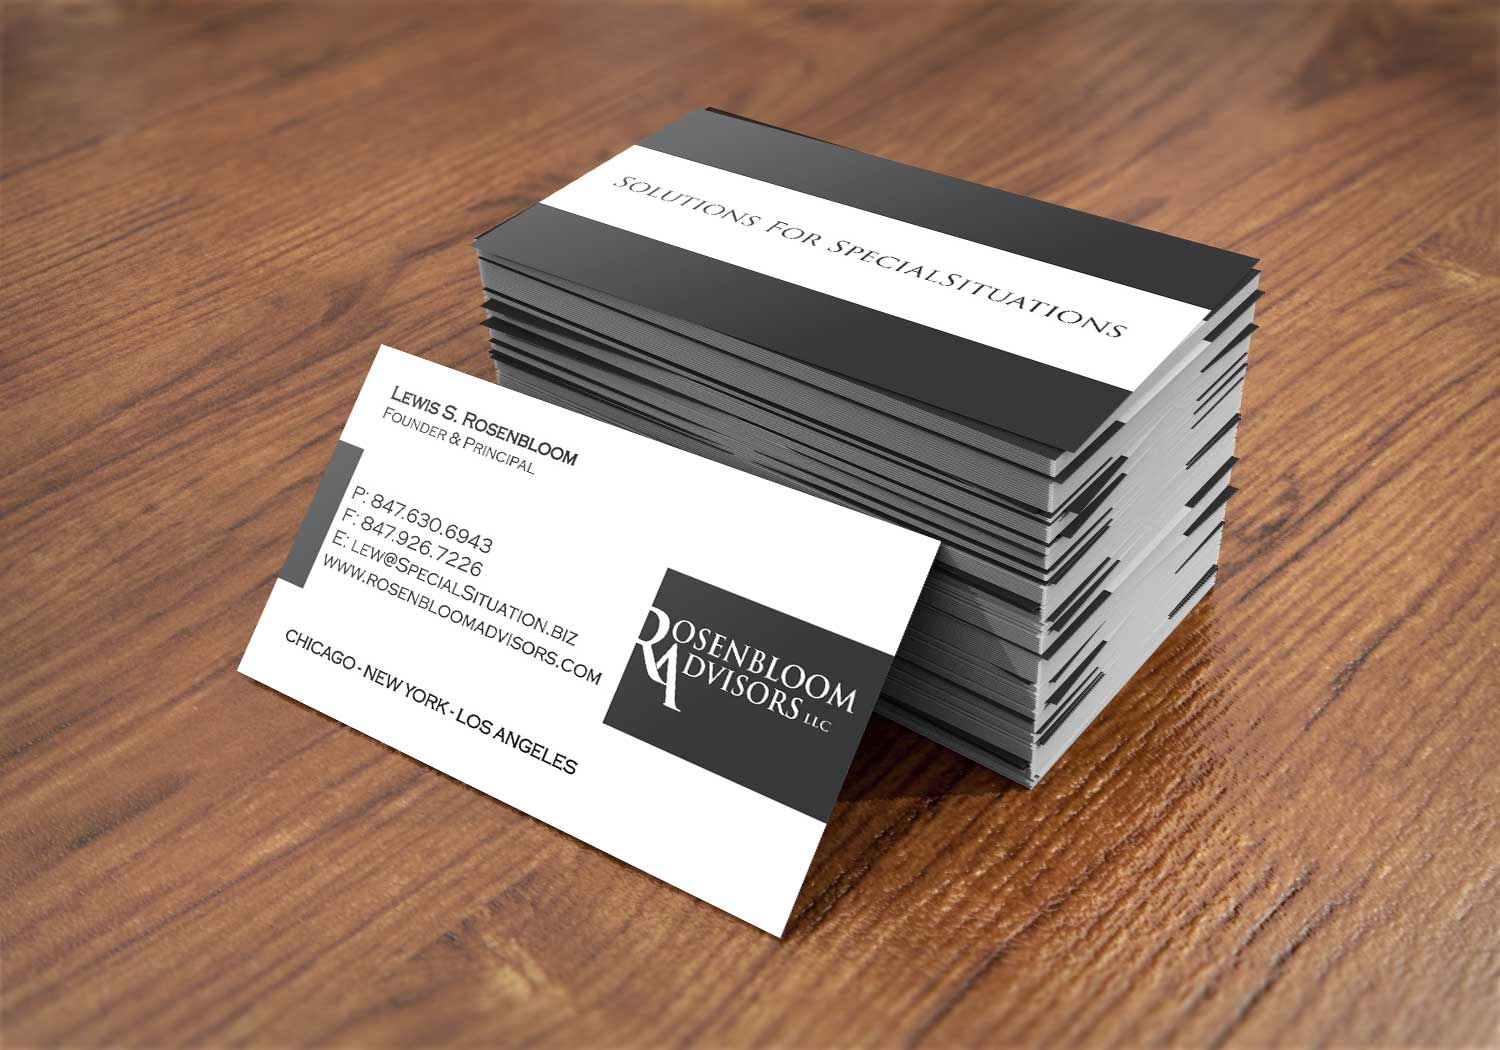 Business card for Rosenbloom Advisors